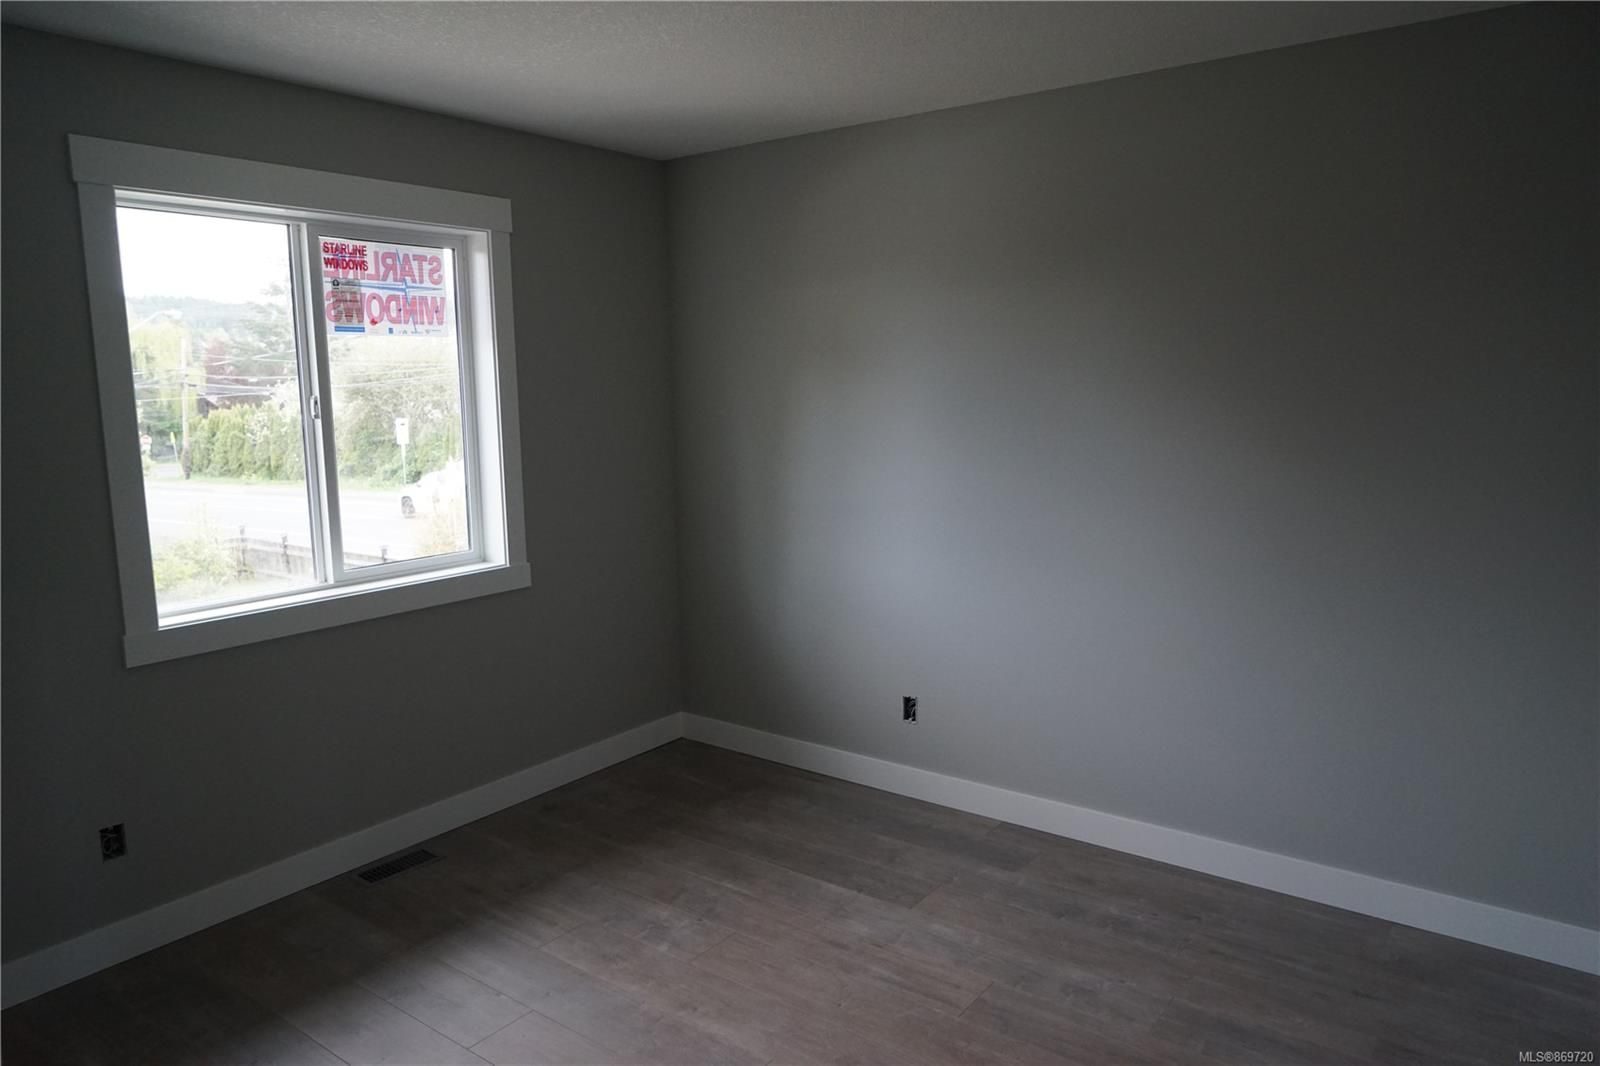 Photo 28: Photos: 770 Bruce Ave in : Na South Nanaimo House for sale (Nanaimo)  : MLS®# 869720